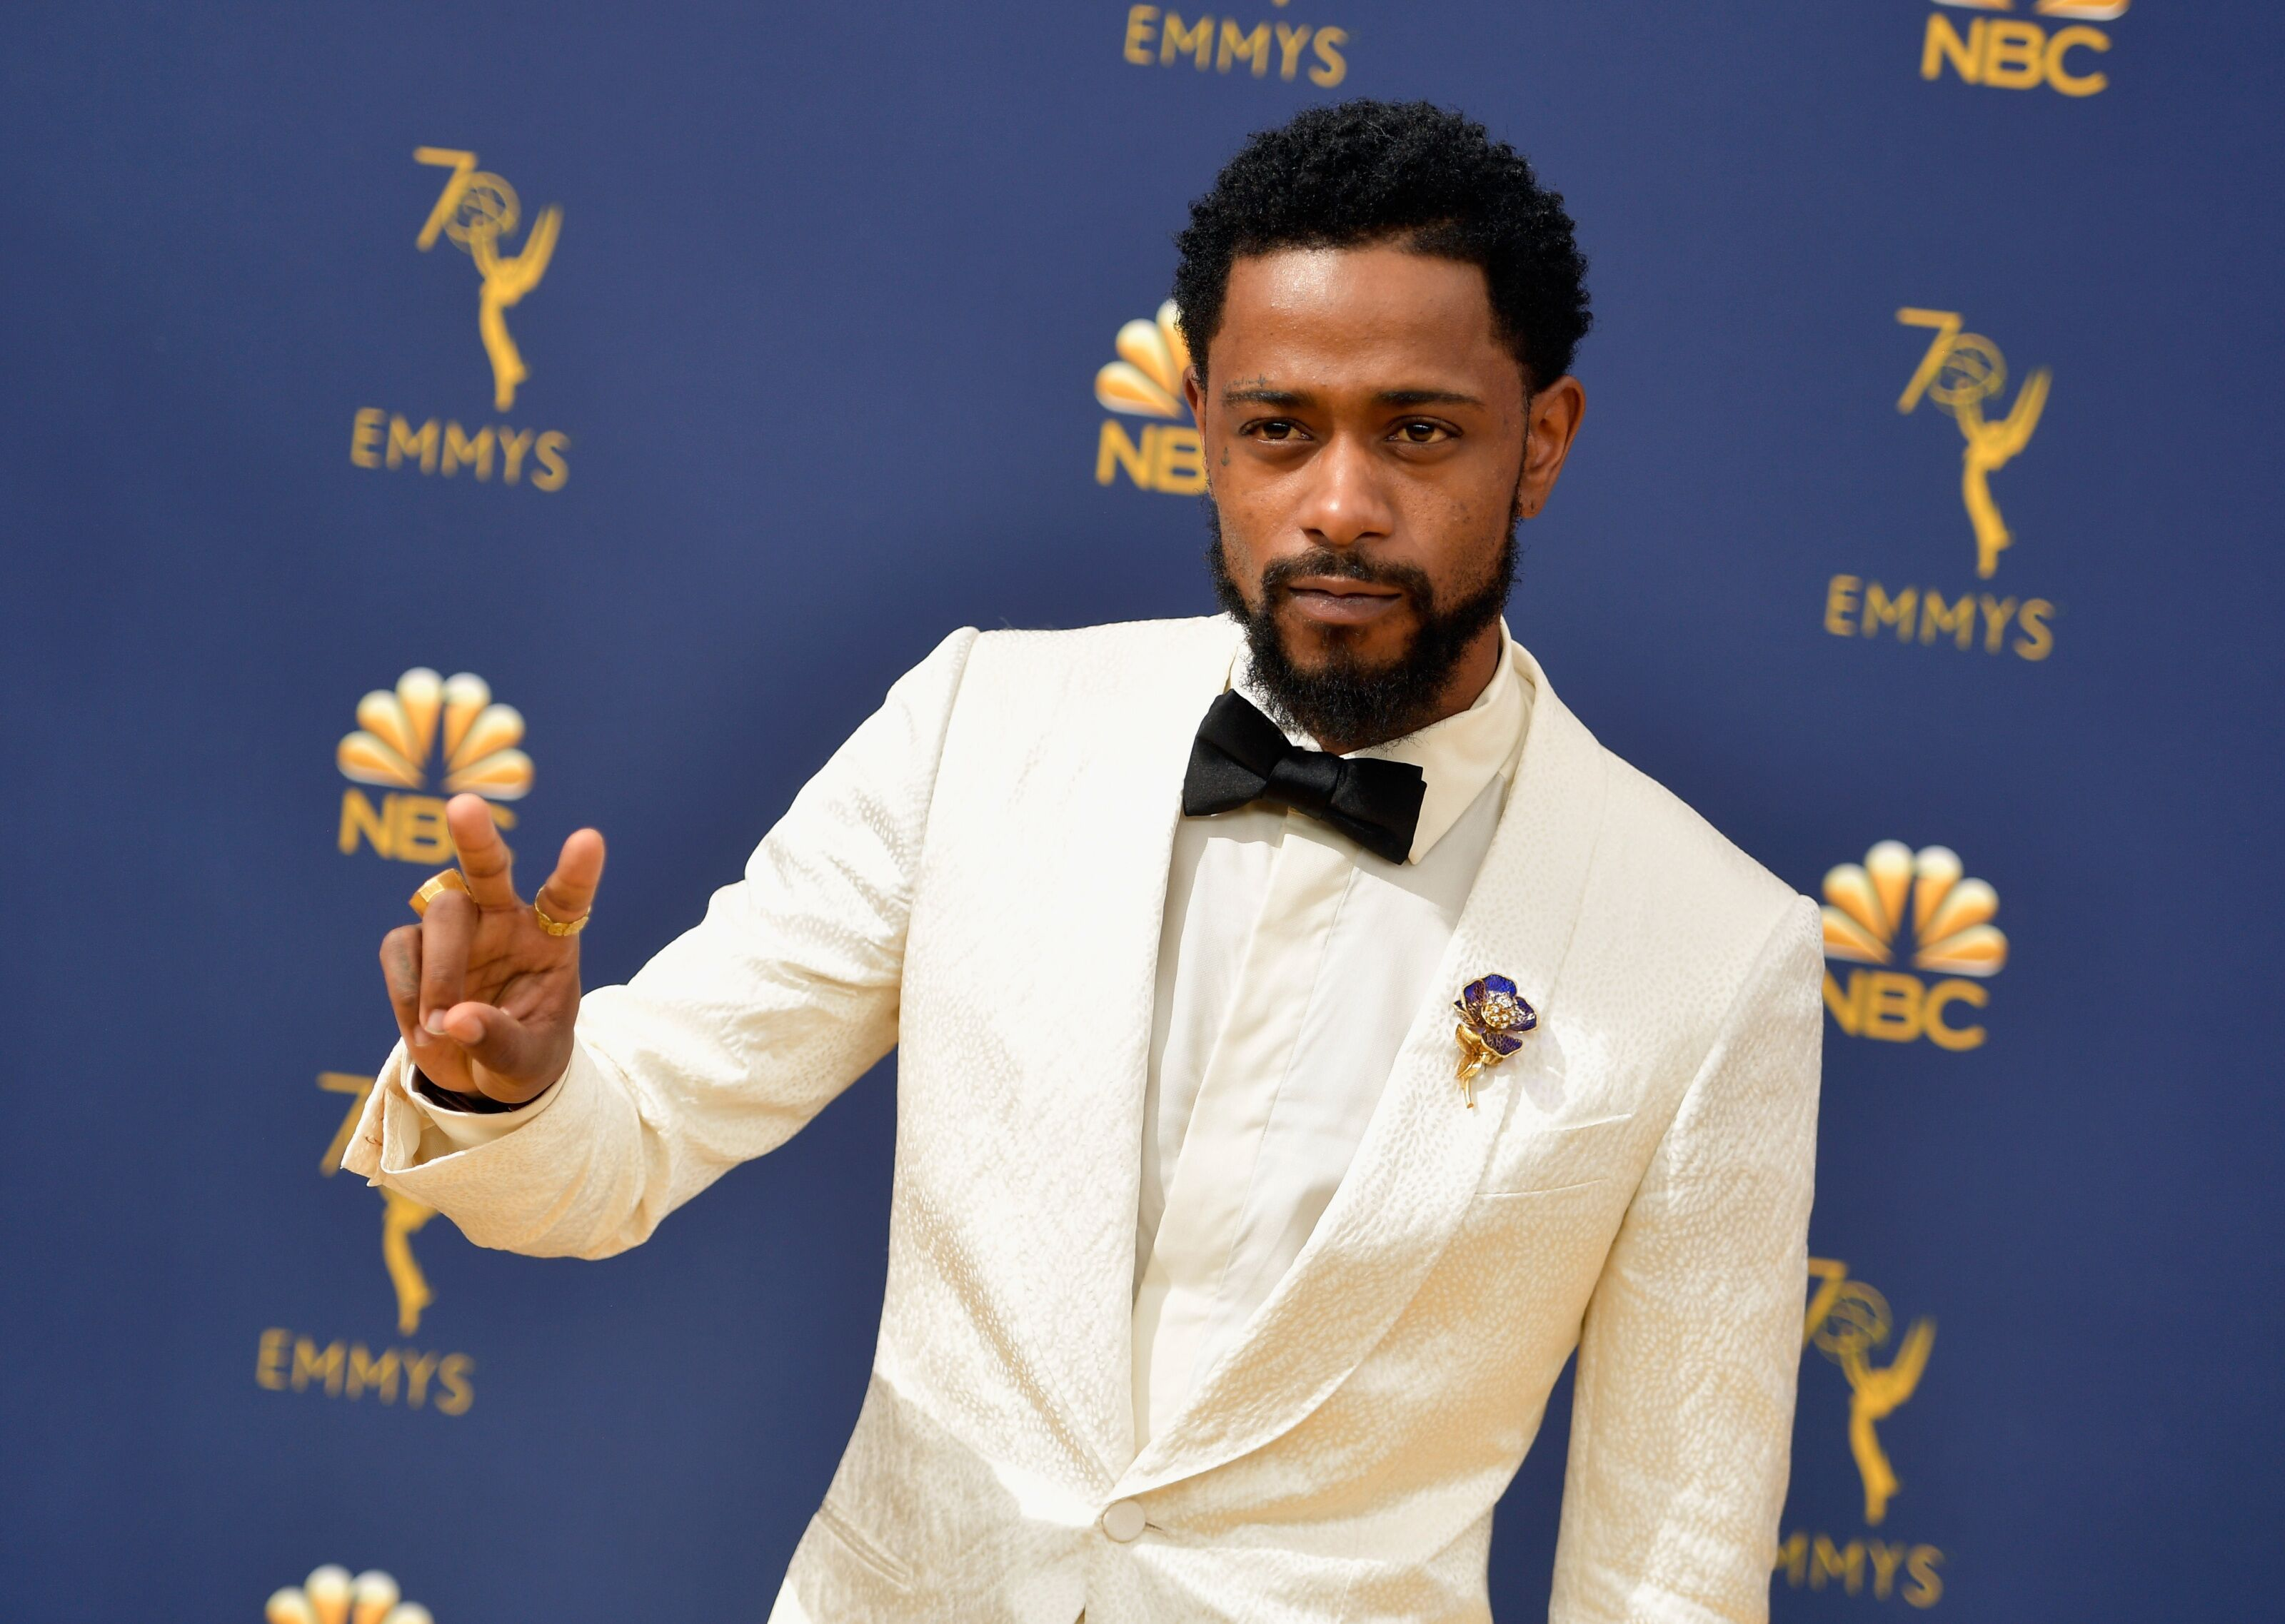 Lakeith Stanfield believes he can fill the shoes of the Joker